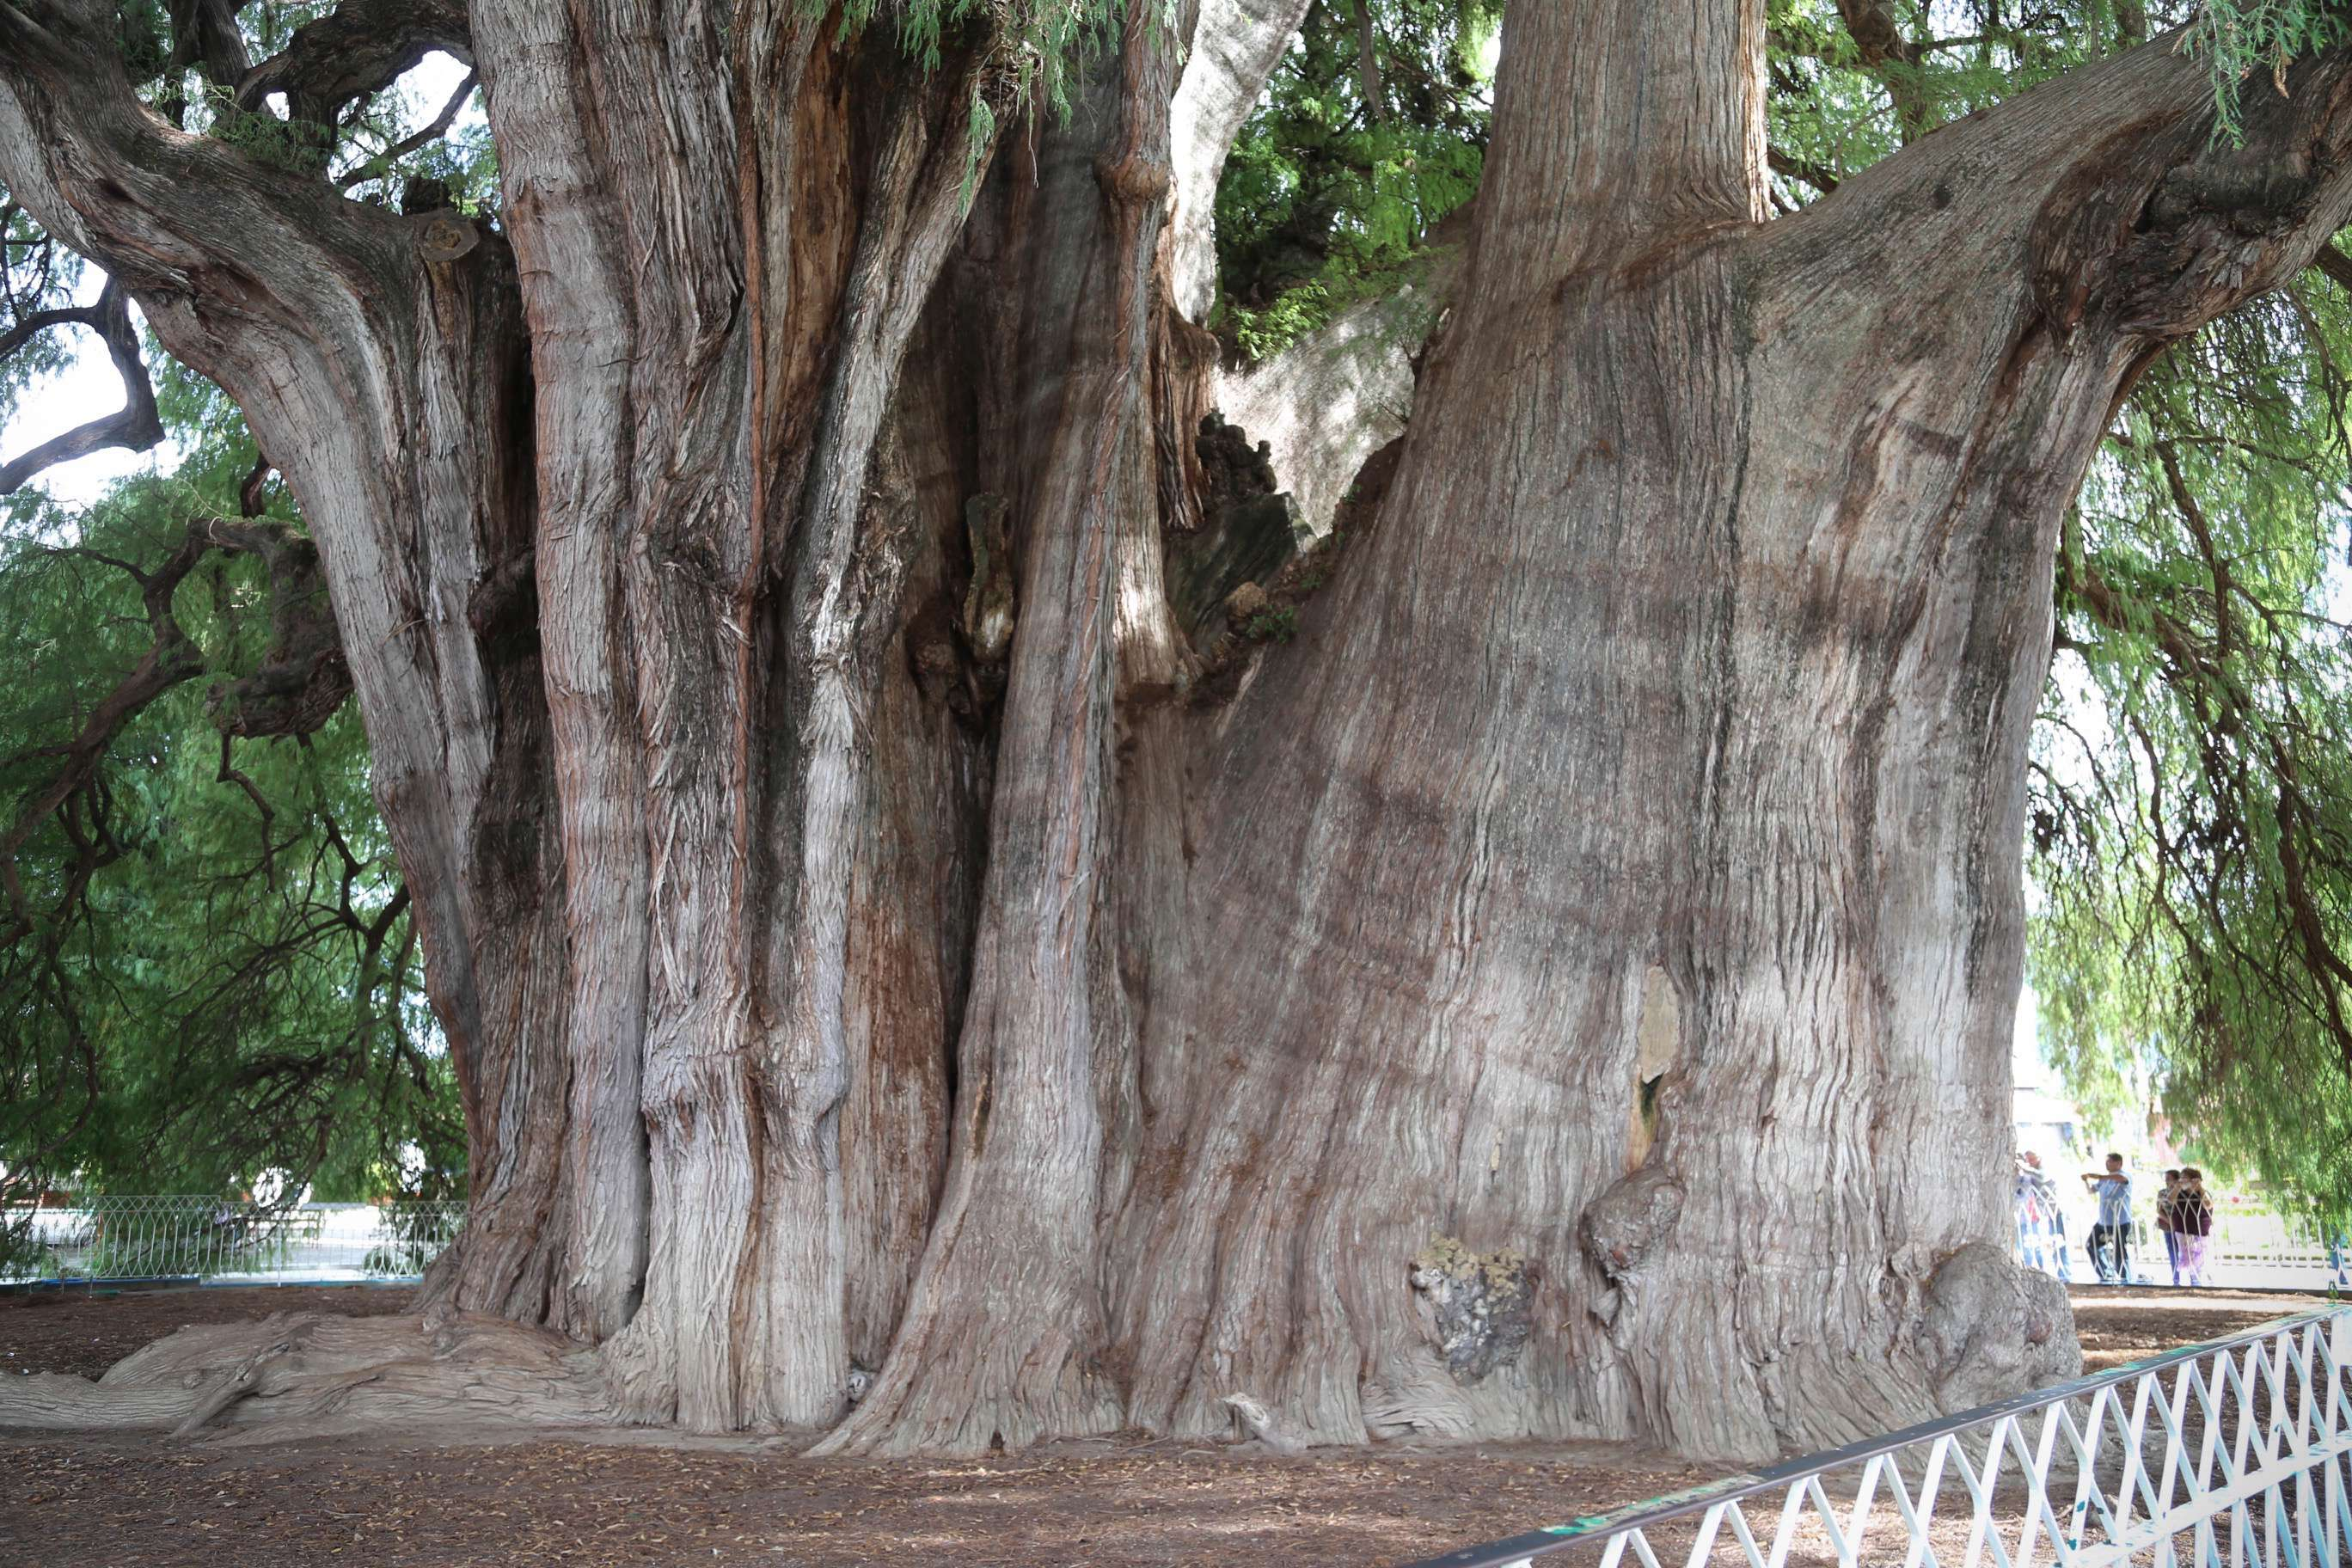 The sheer size and complexity of the tree's trunk is a true wonder of nature.